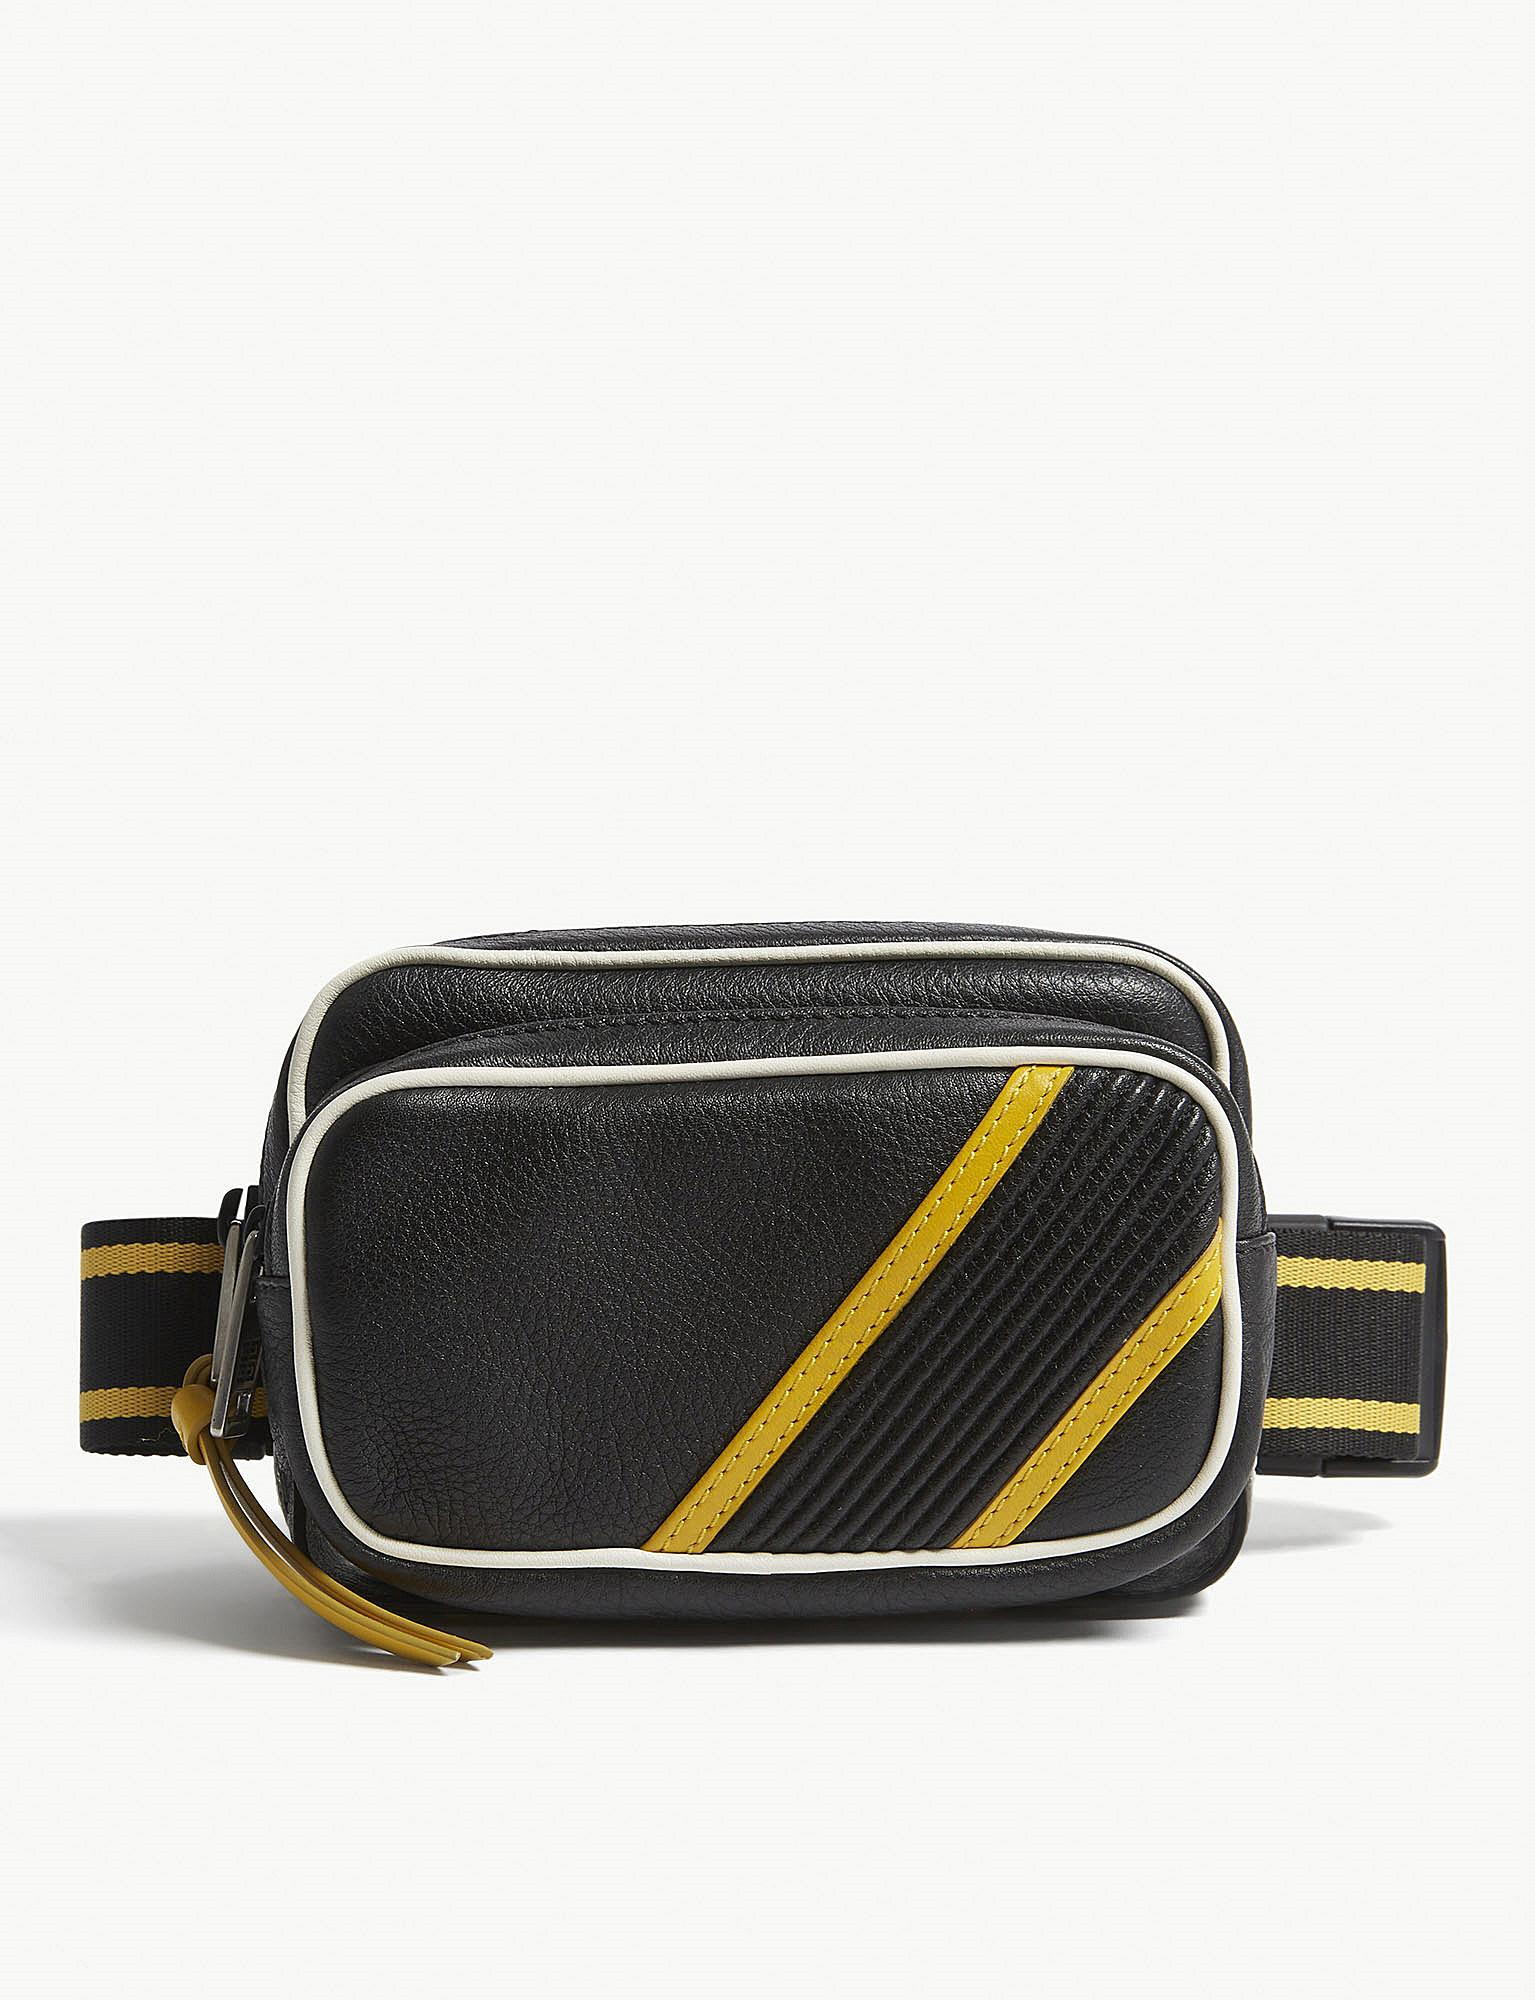 Lyst - Givenchy Mc3 Textured-leather Bumbag in Black for Men 224cdf1fda